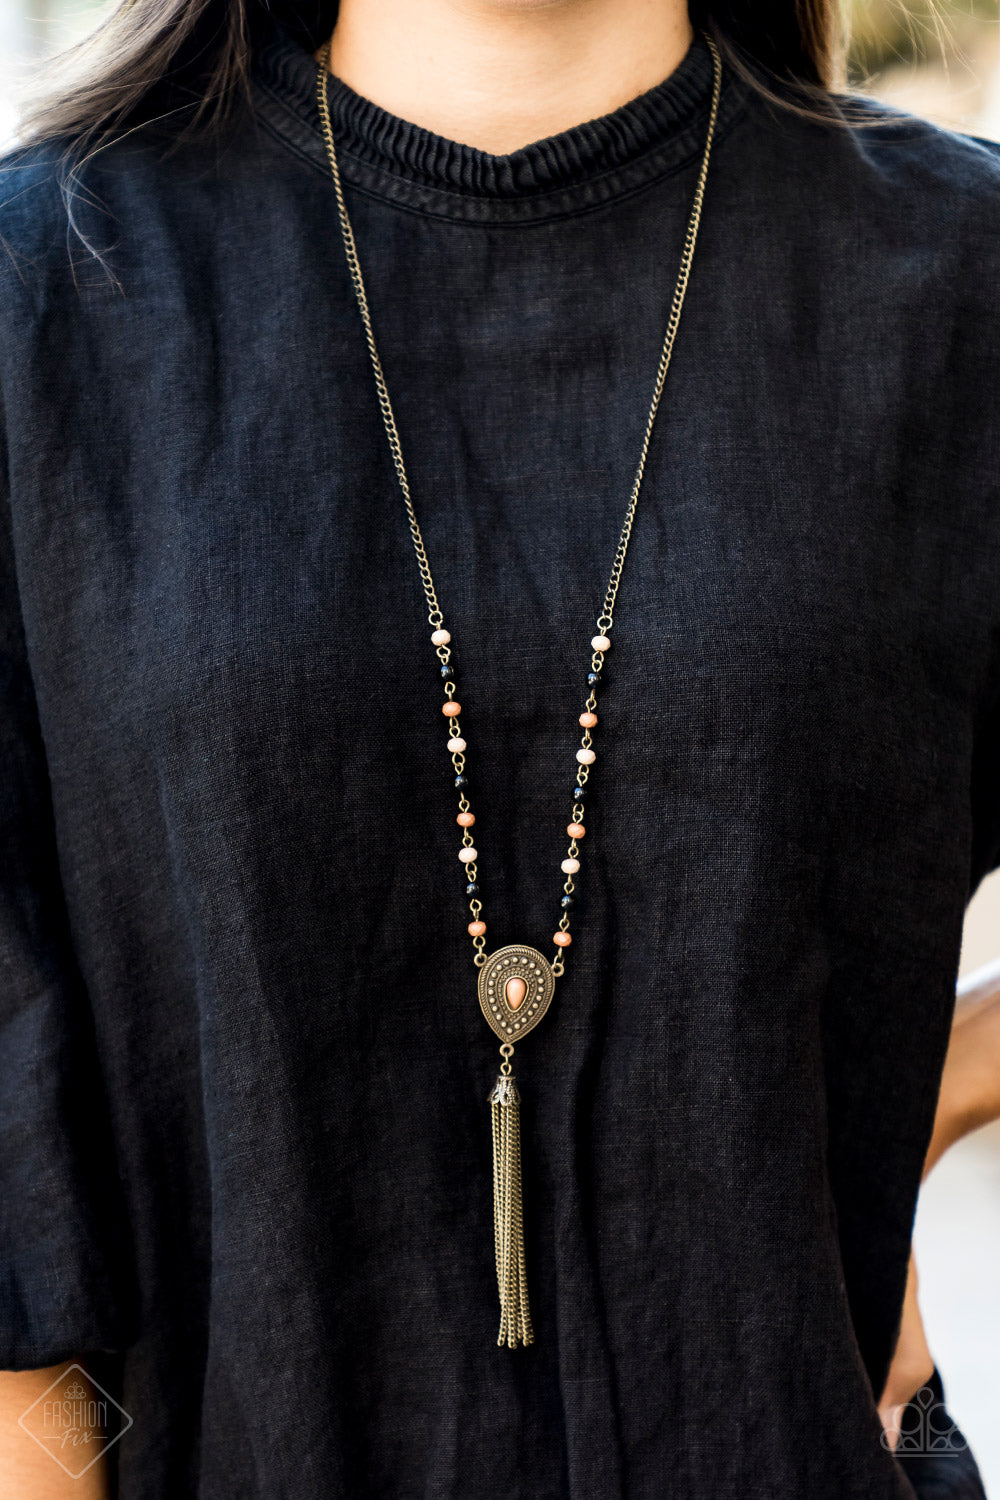 Polished black beads and faceted Almond Buff and Meerkat beads trickle along a brass chain, giving way to an antiqued teardrop pendant. Infused with studded detail and a matching Meerkat beaded center, the ornate pendant is decorated in a brass chain tassel for a wanderlust finish. Features an adjustable clasp closure.  Sold as one individual necklace. Includes one pair of matching earrings.   Sunset Sightings Fashion Fix December 2018  Always nickel and lead free.